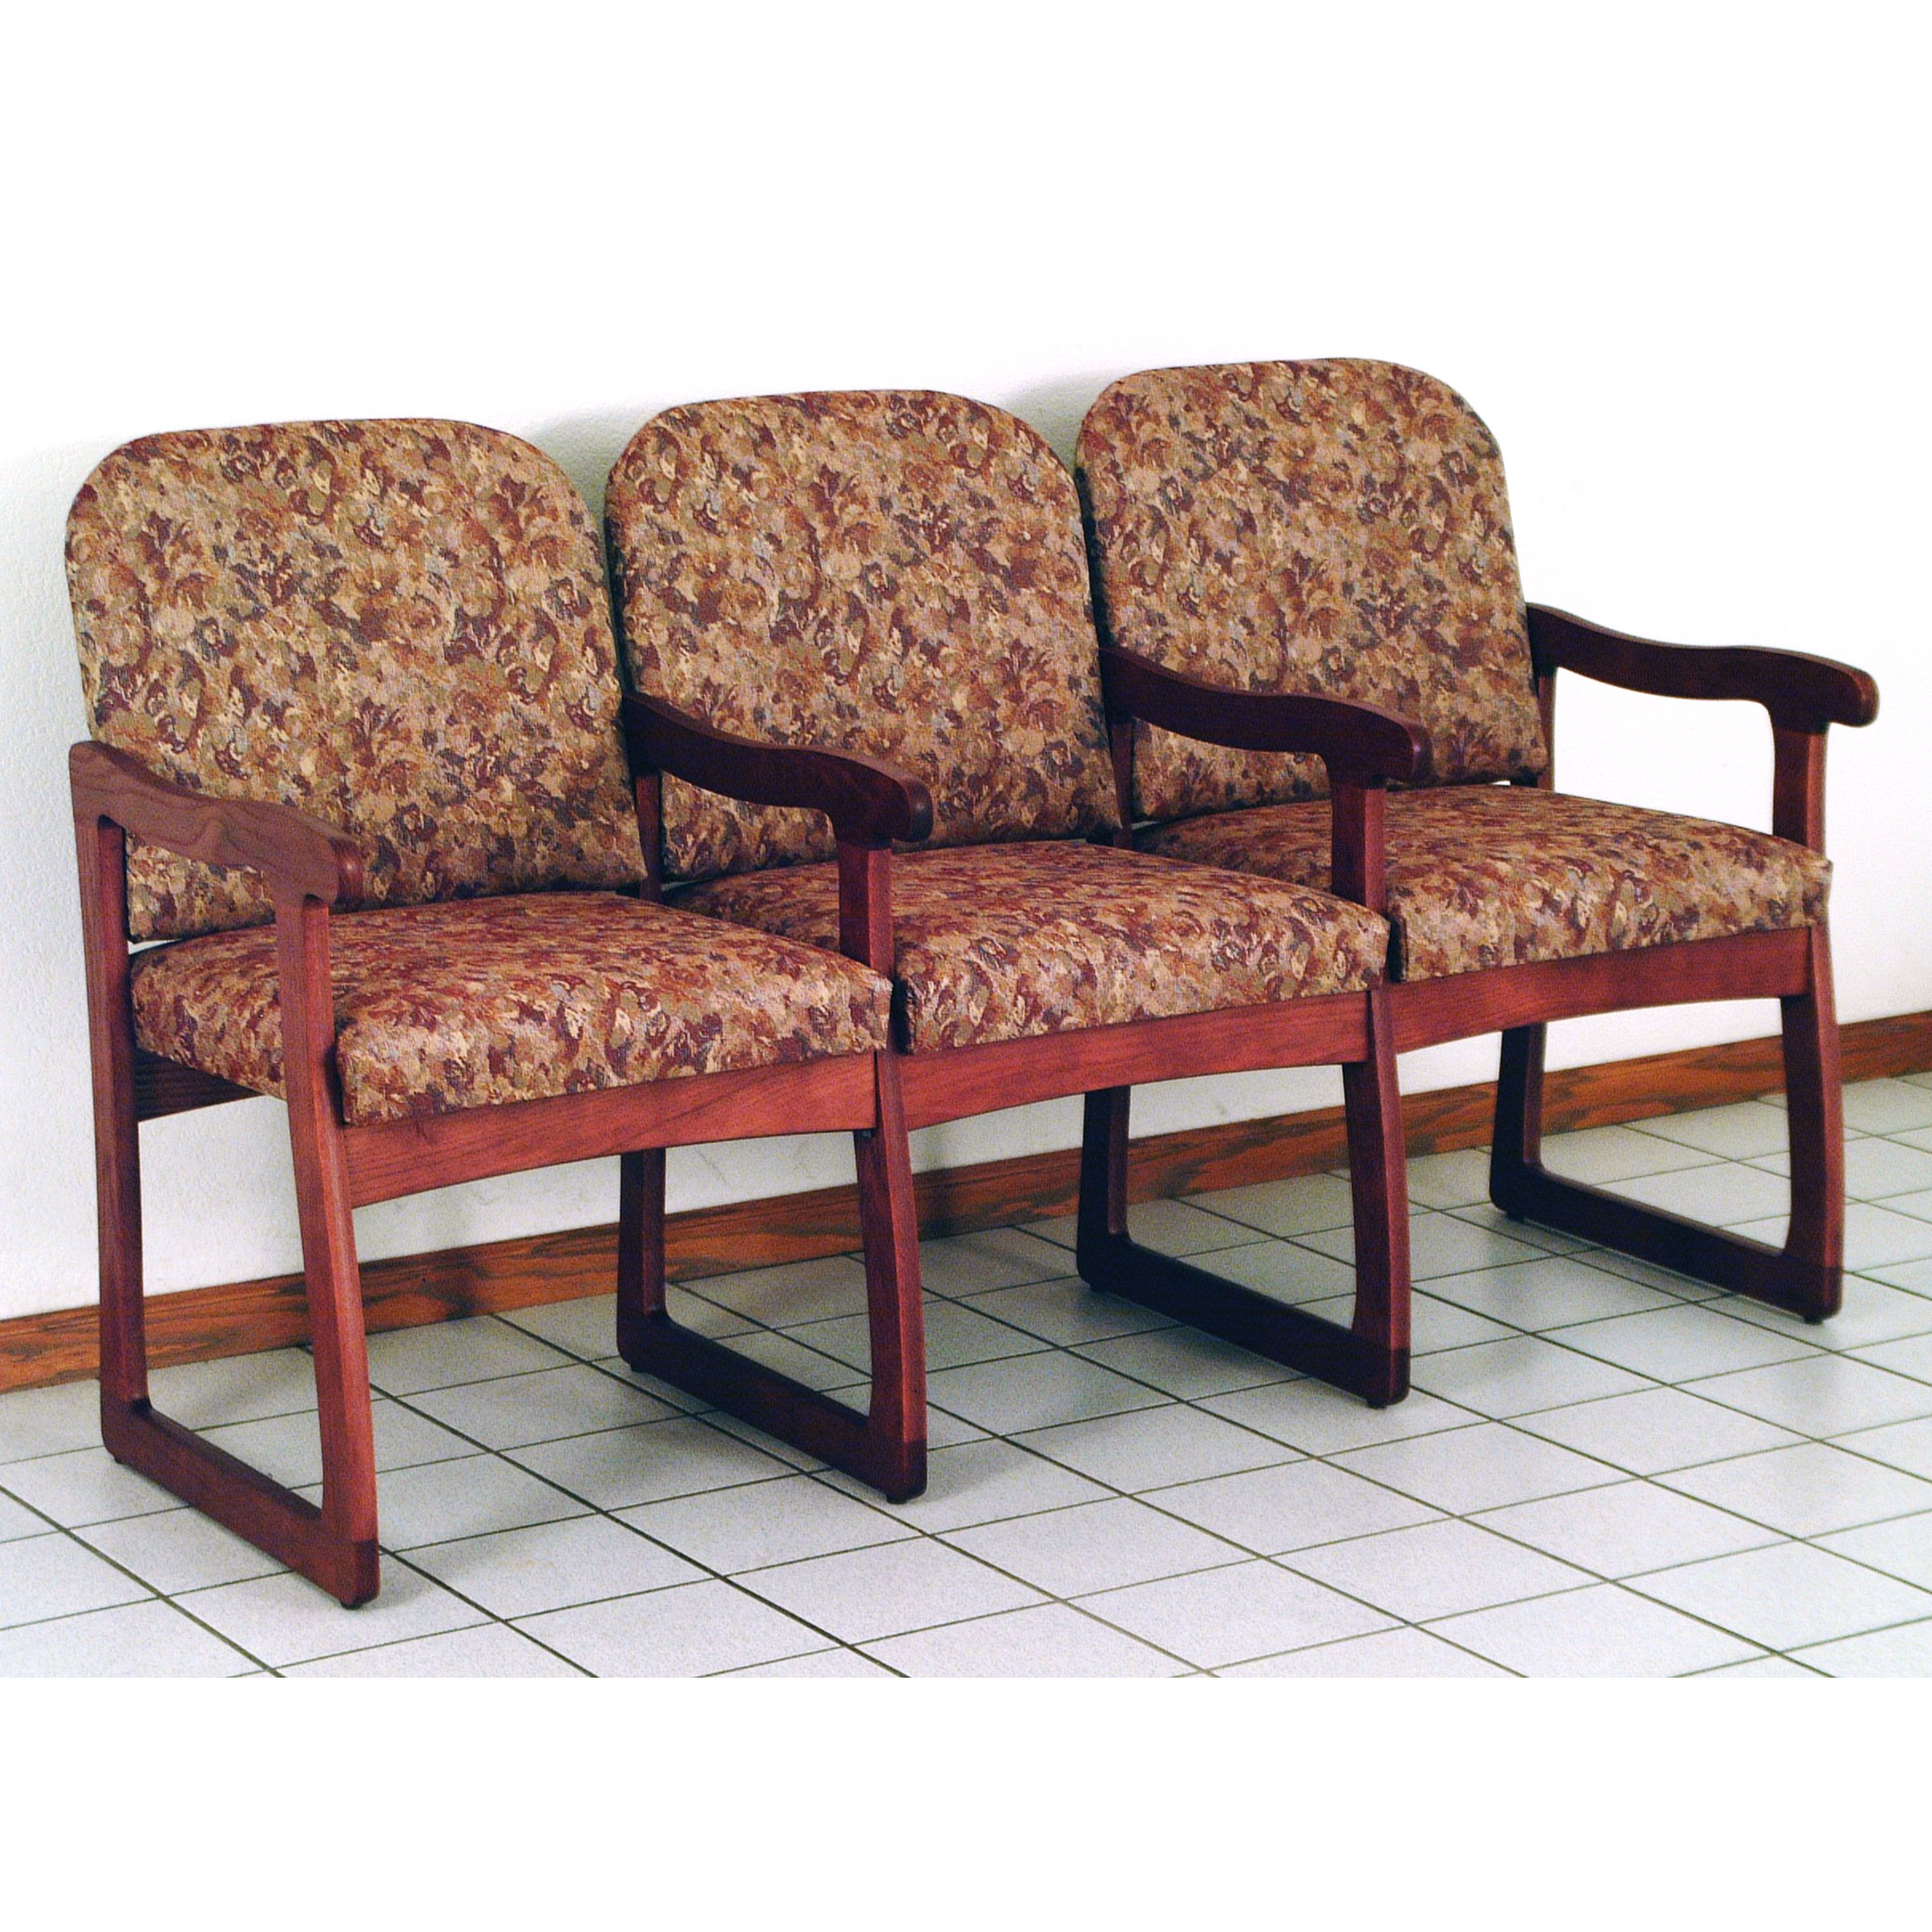 Wooden Mallet Prairie Three Seat Guest Chair